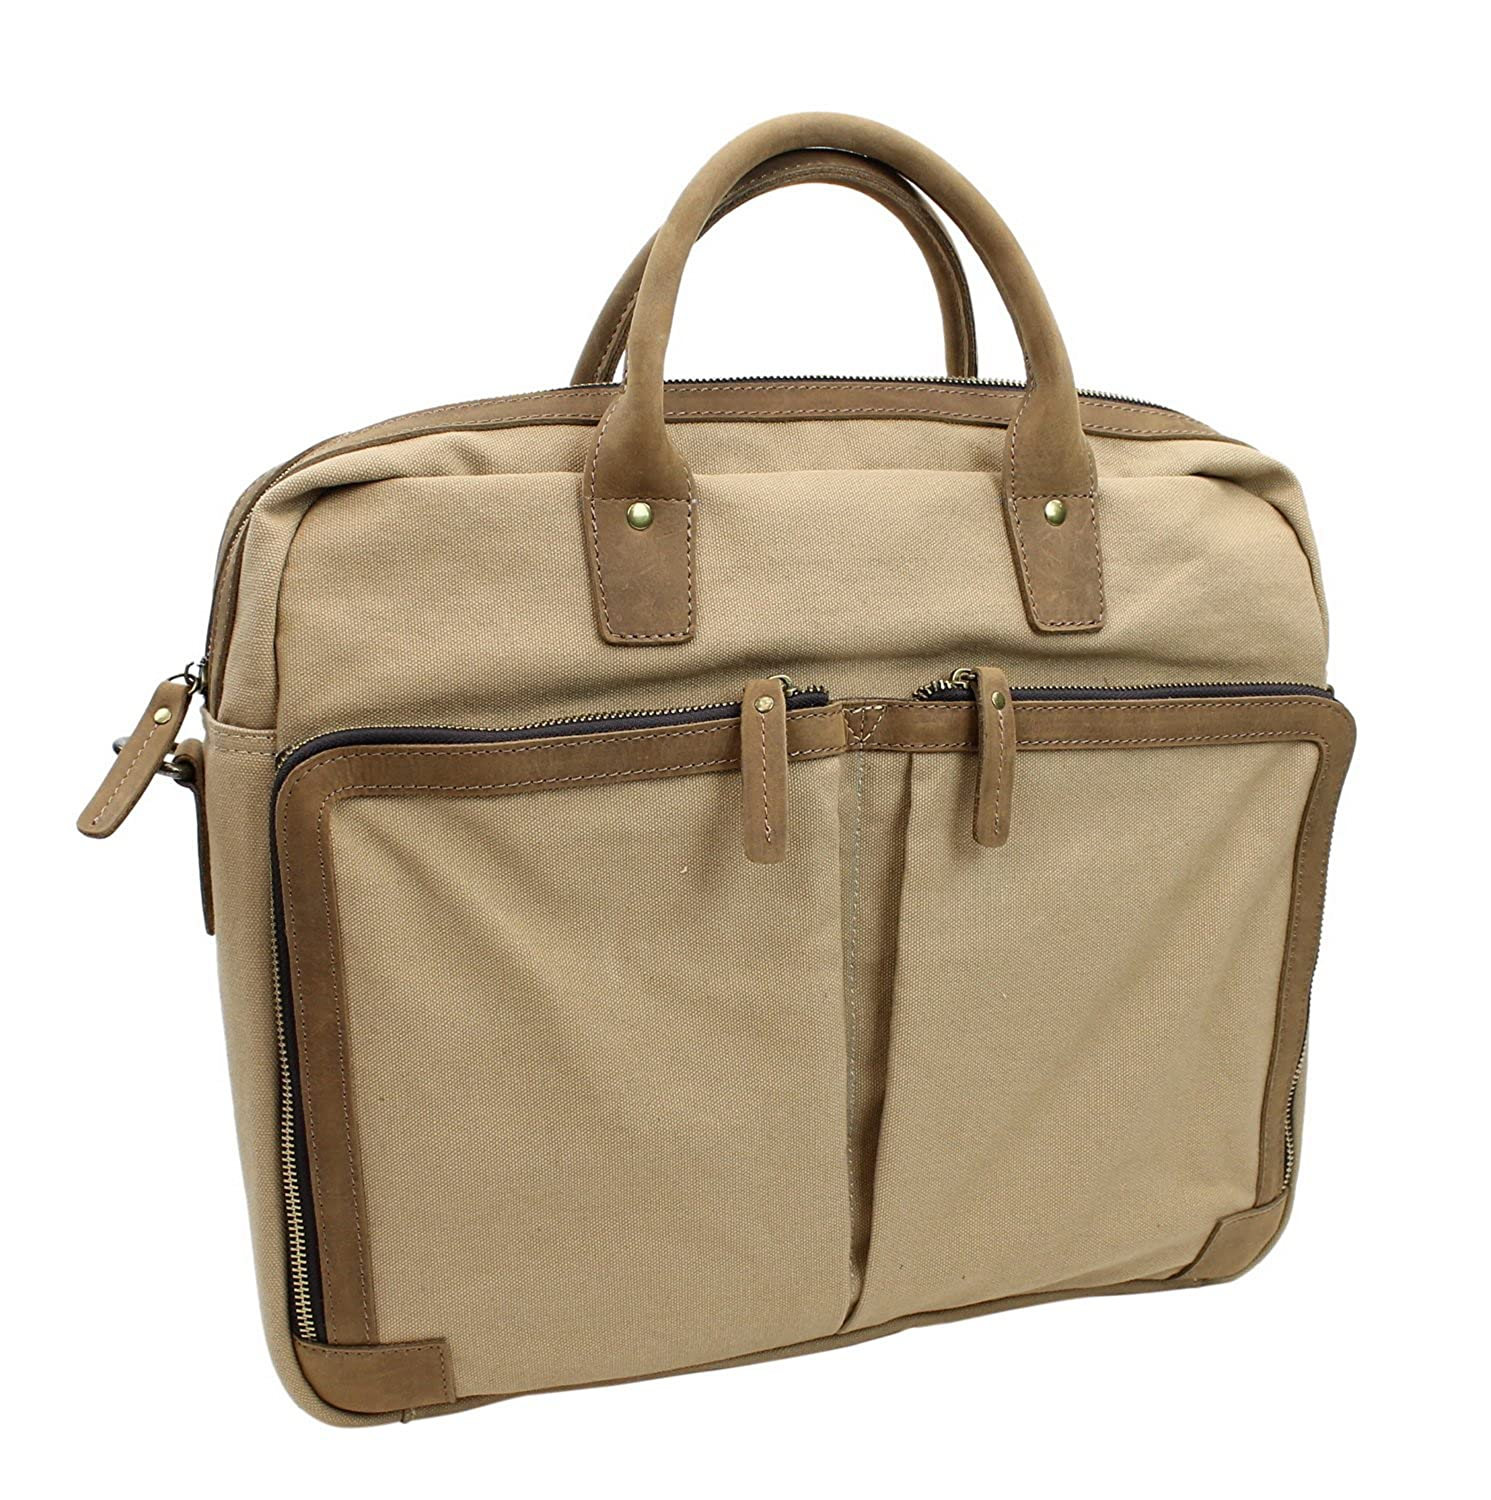 Casual Style Cotton Canvas Large Messenger Laptop Bag C47. Military Green B071LFDFB3